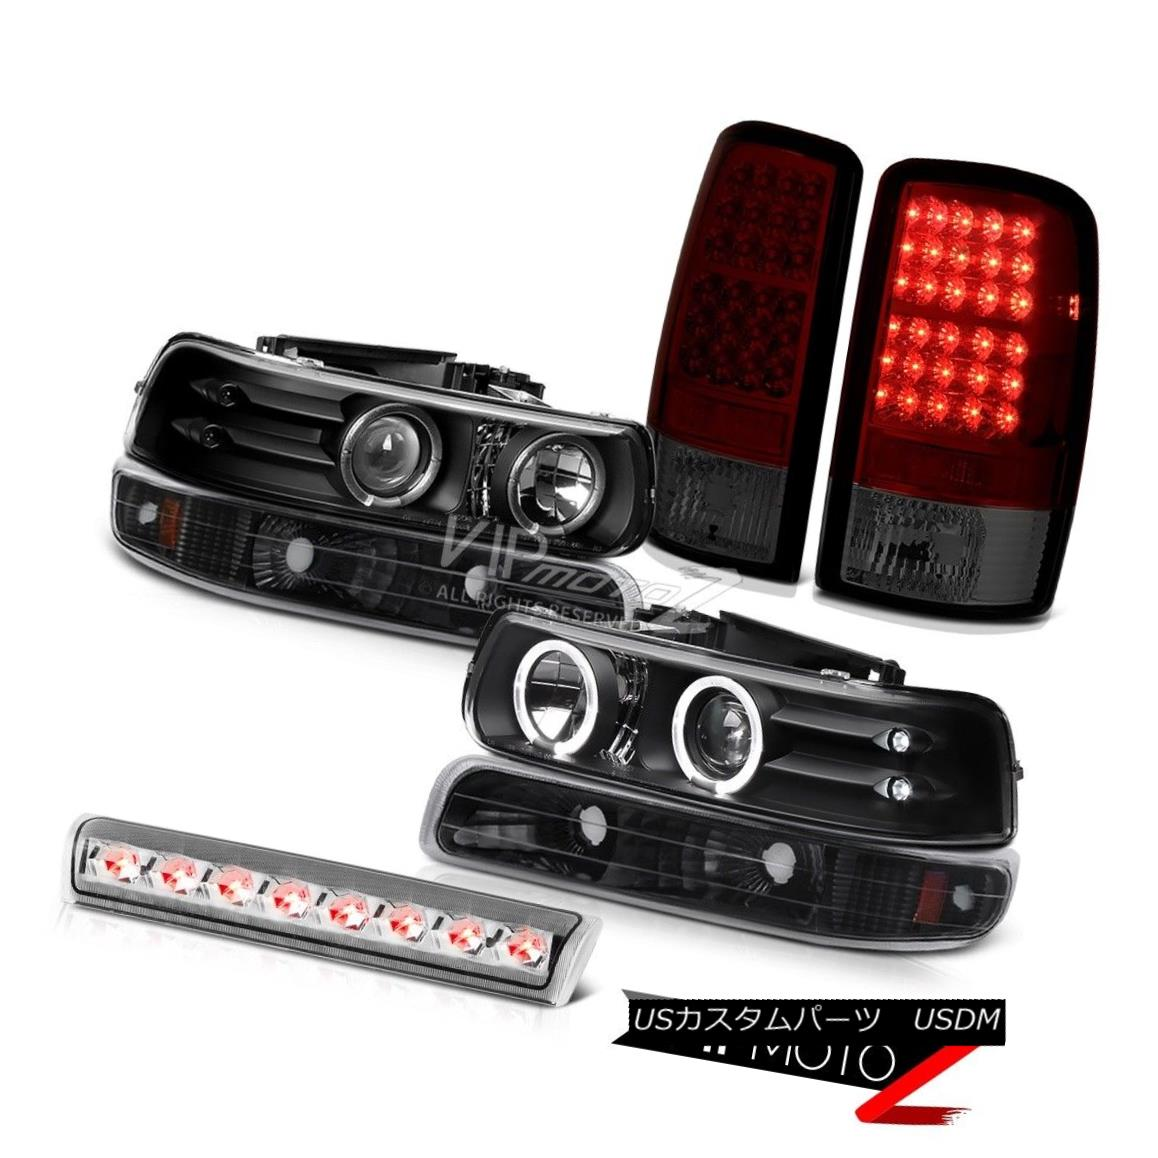 ヘッドライト LED Projector Headlights Inky Black Bumper Rear Tail Lights Cargo 00-06 Tahoe LS LEDプロジェクターヘッドライトInky Black Bumperリアテールライトカーゴ00-06 Tahoe LS